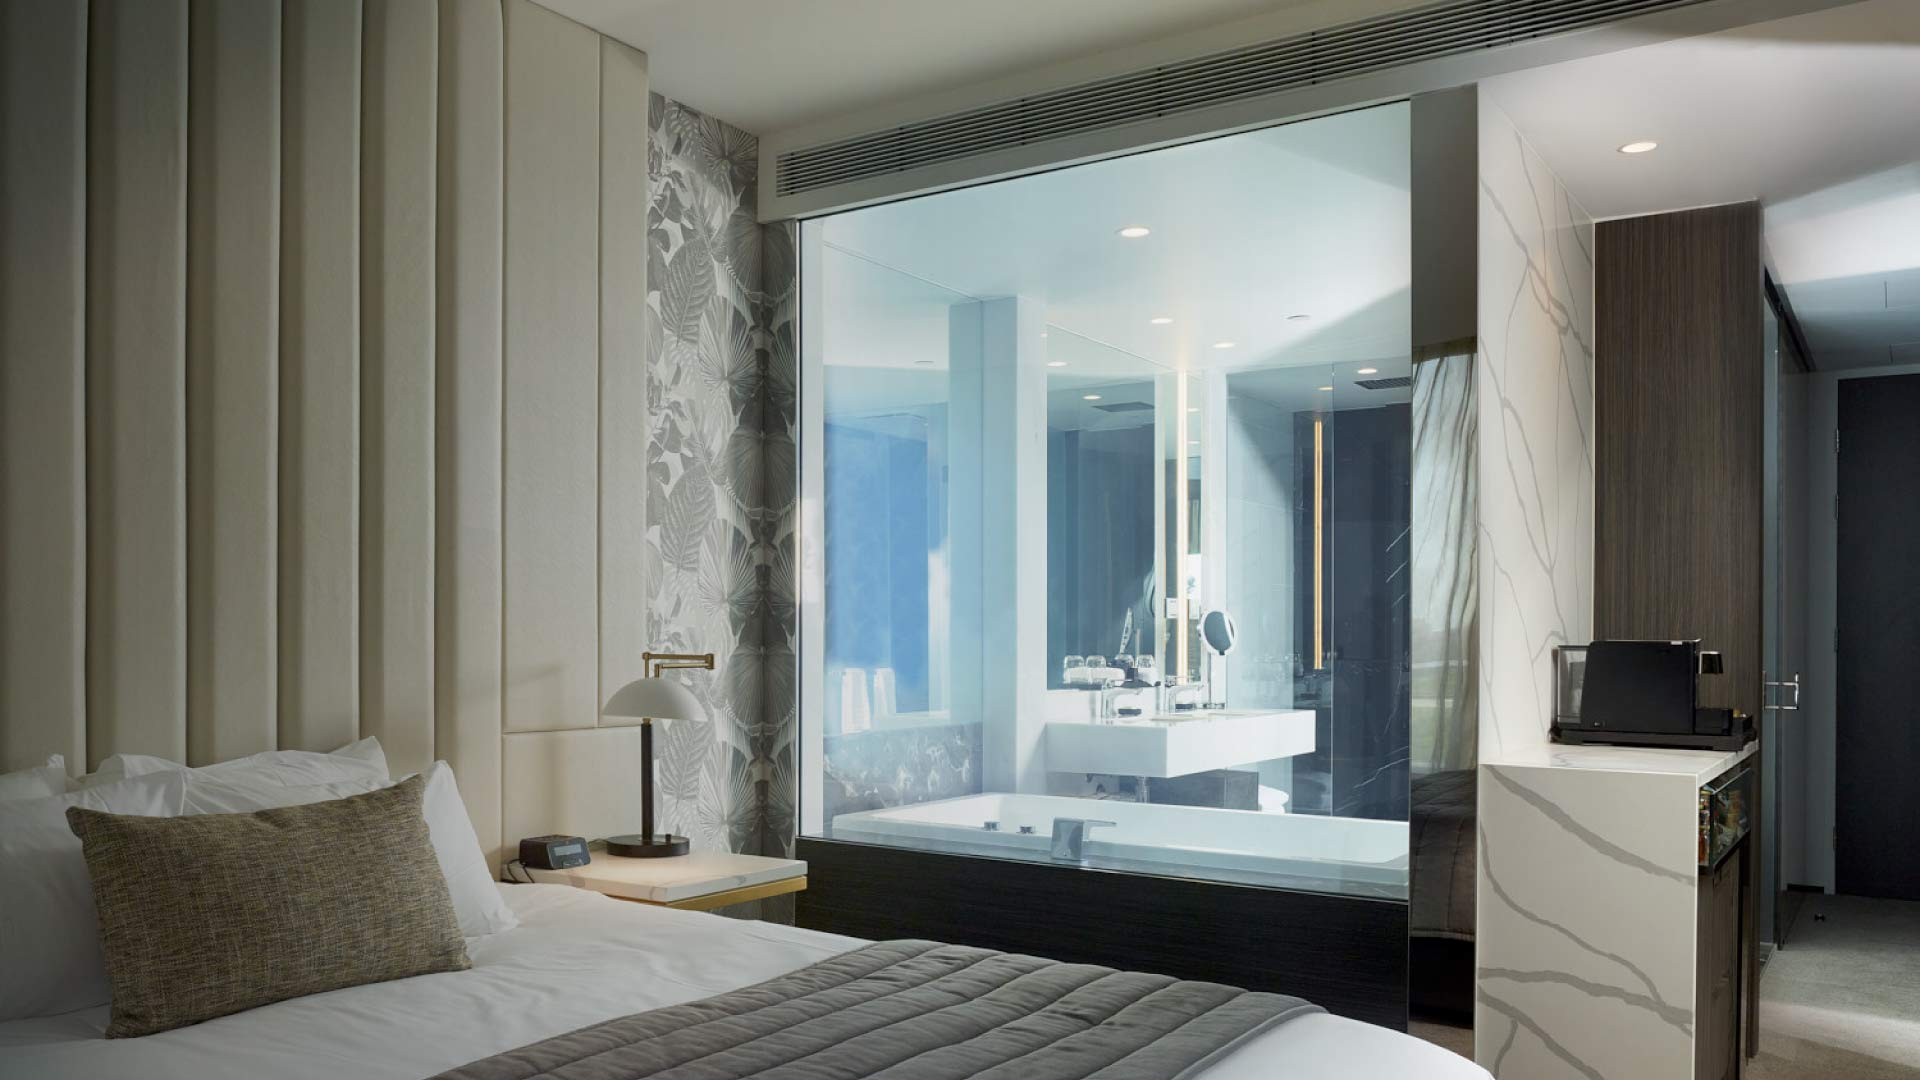 switchable glass, switchable smart glass, switchable privacy glass, glass that turns opaque